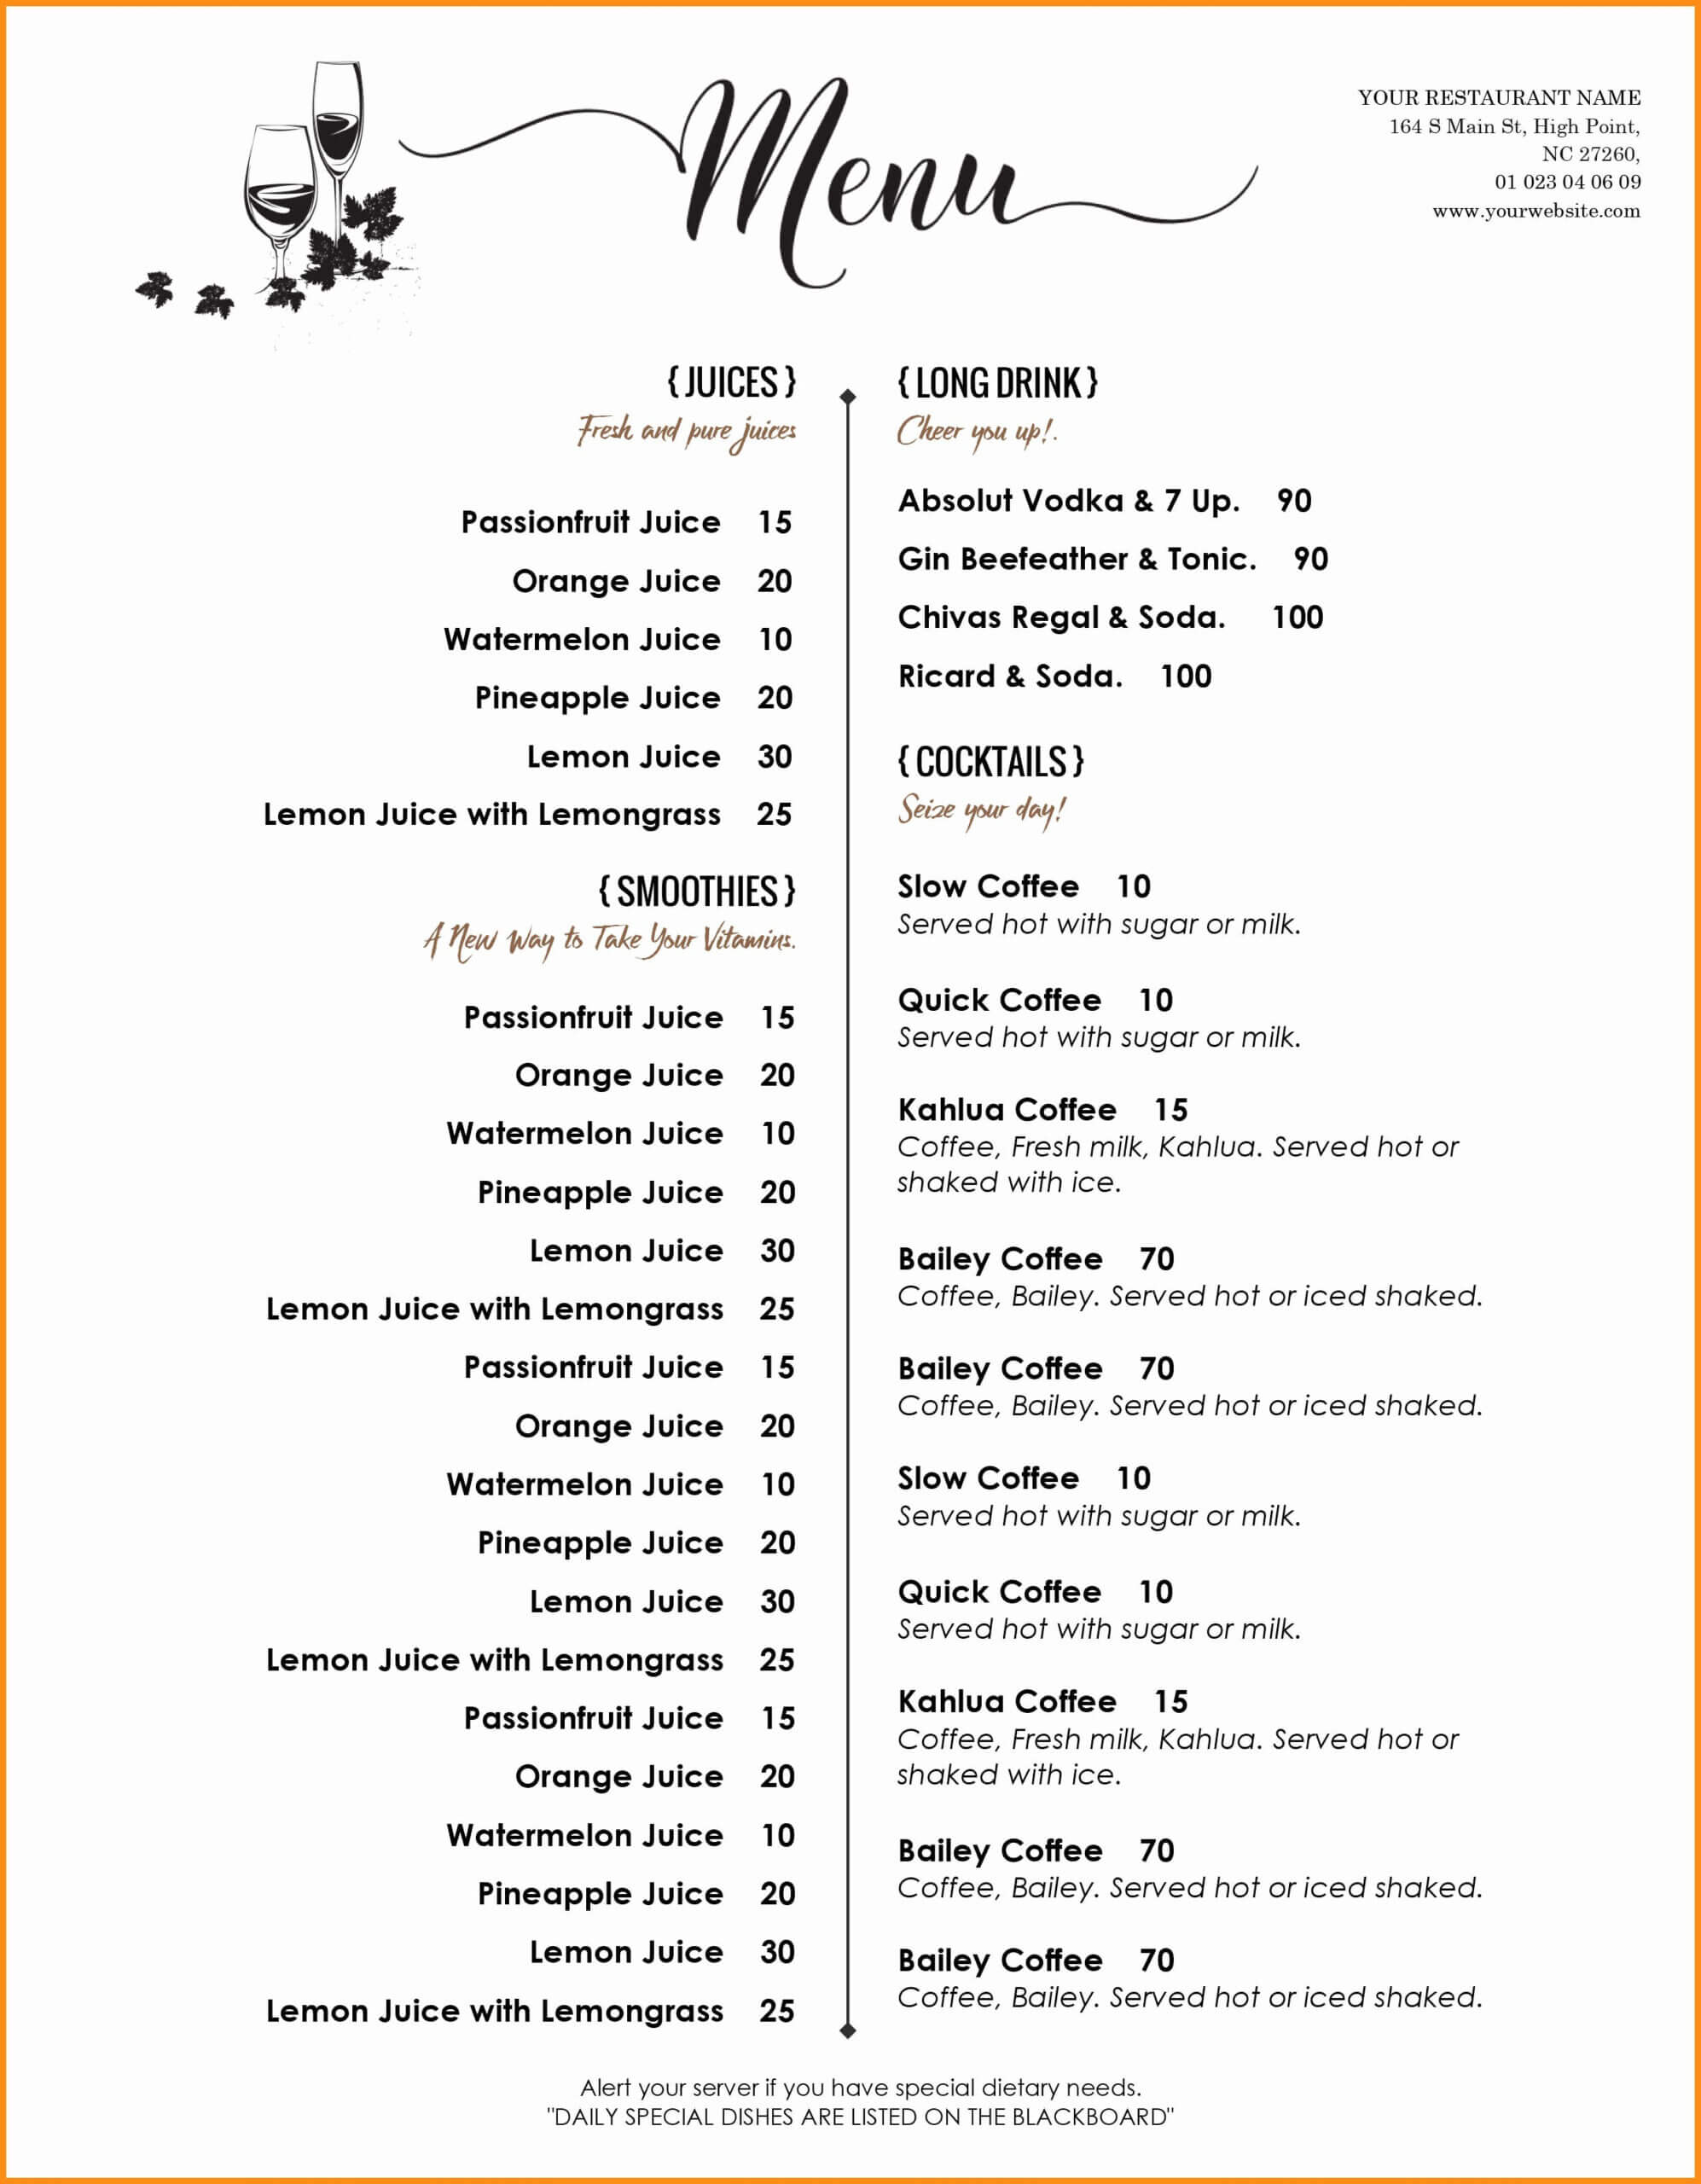 002 Menu Template Free Word Ideas Del Ray Imposing Weekly Pertaining To Free Cafe Menu Templates For Word